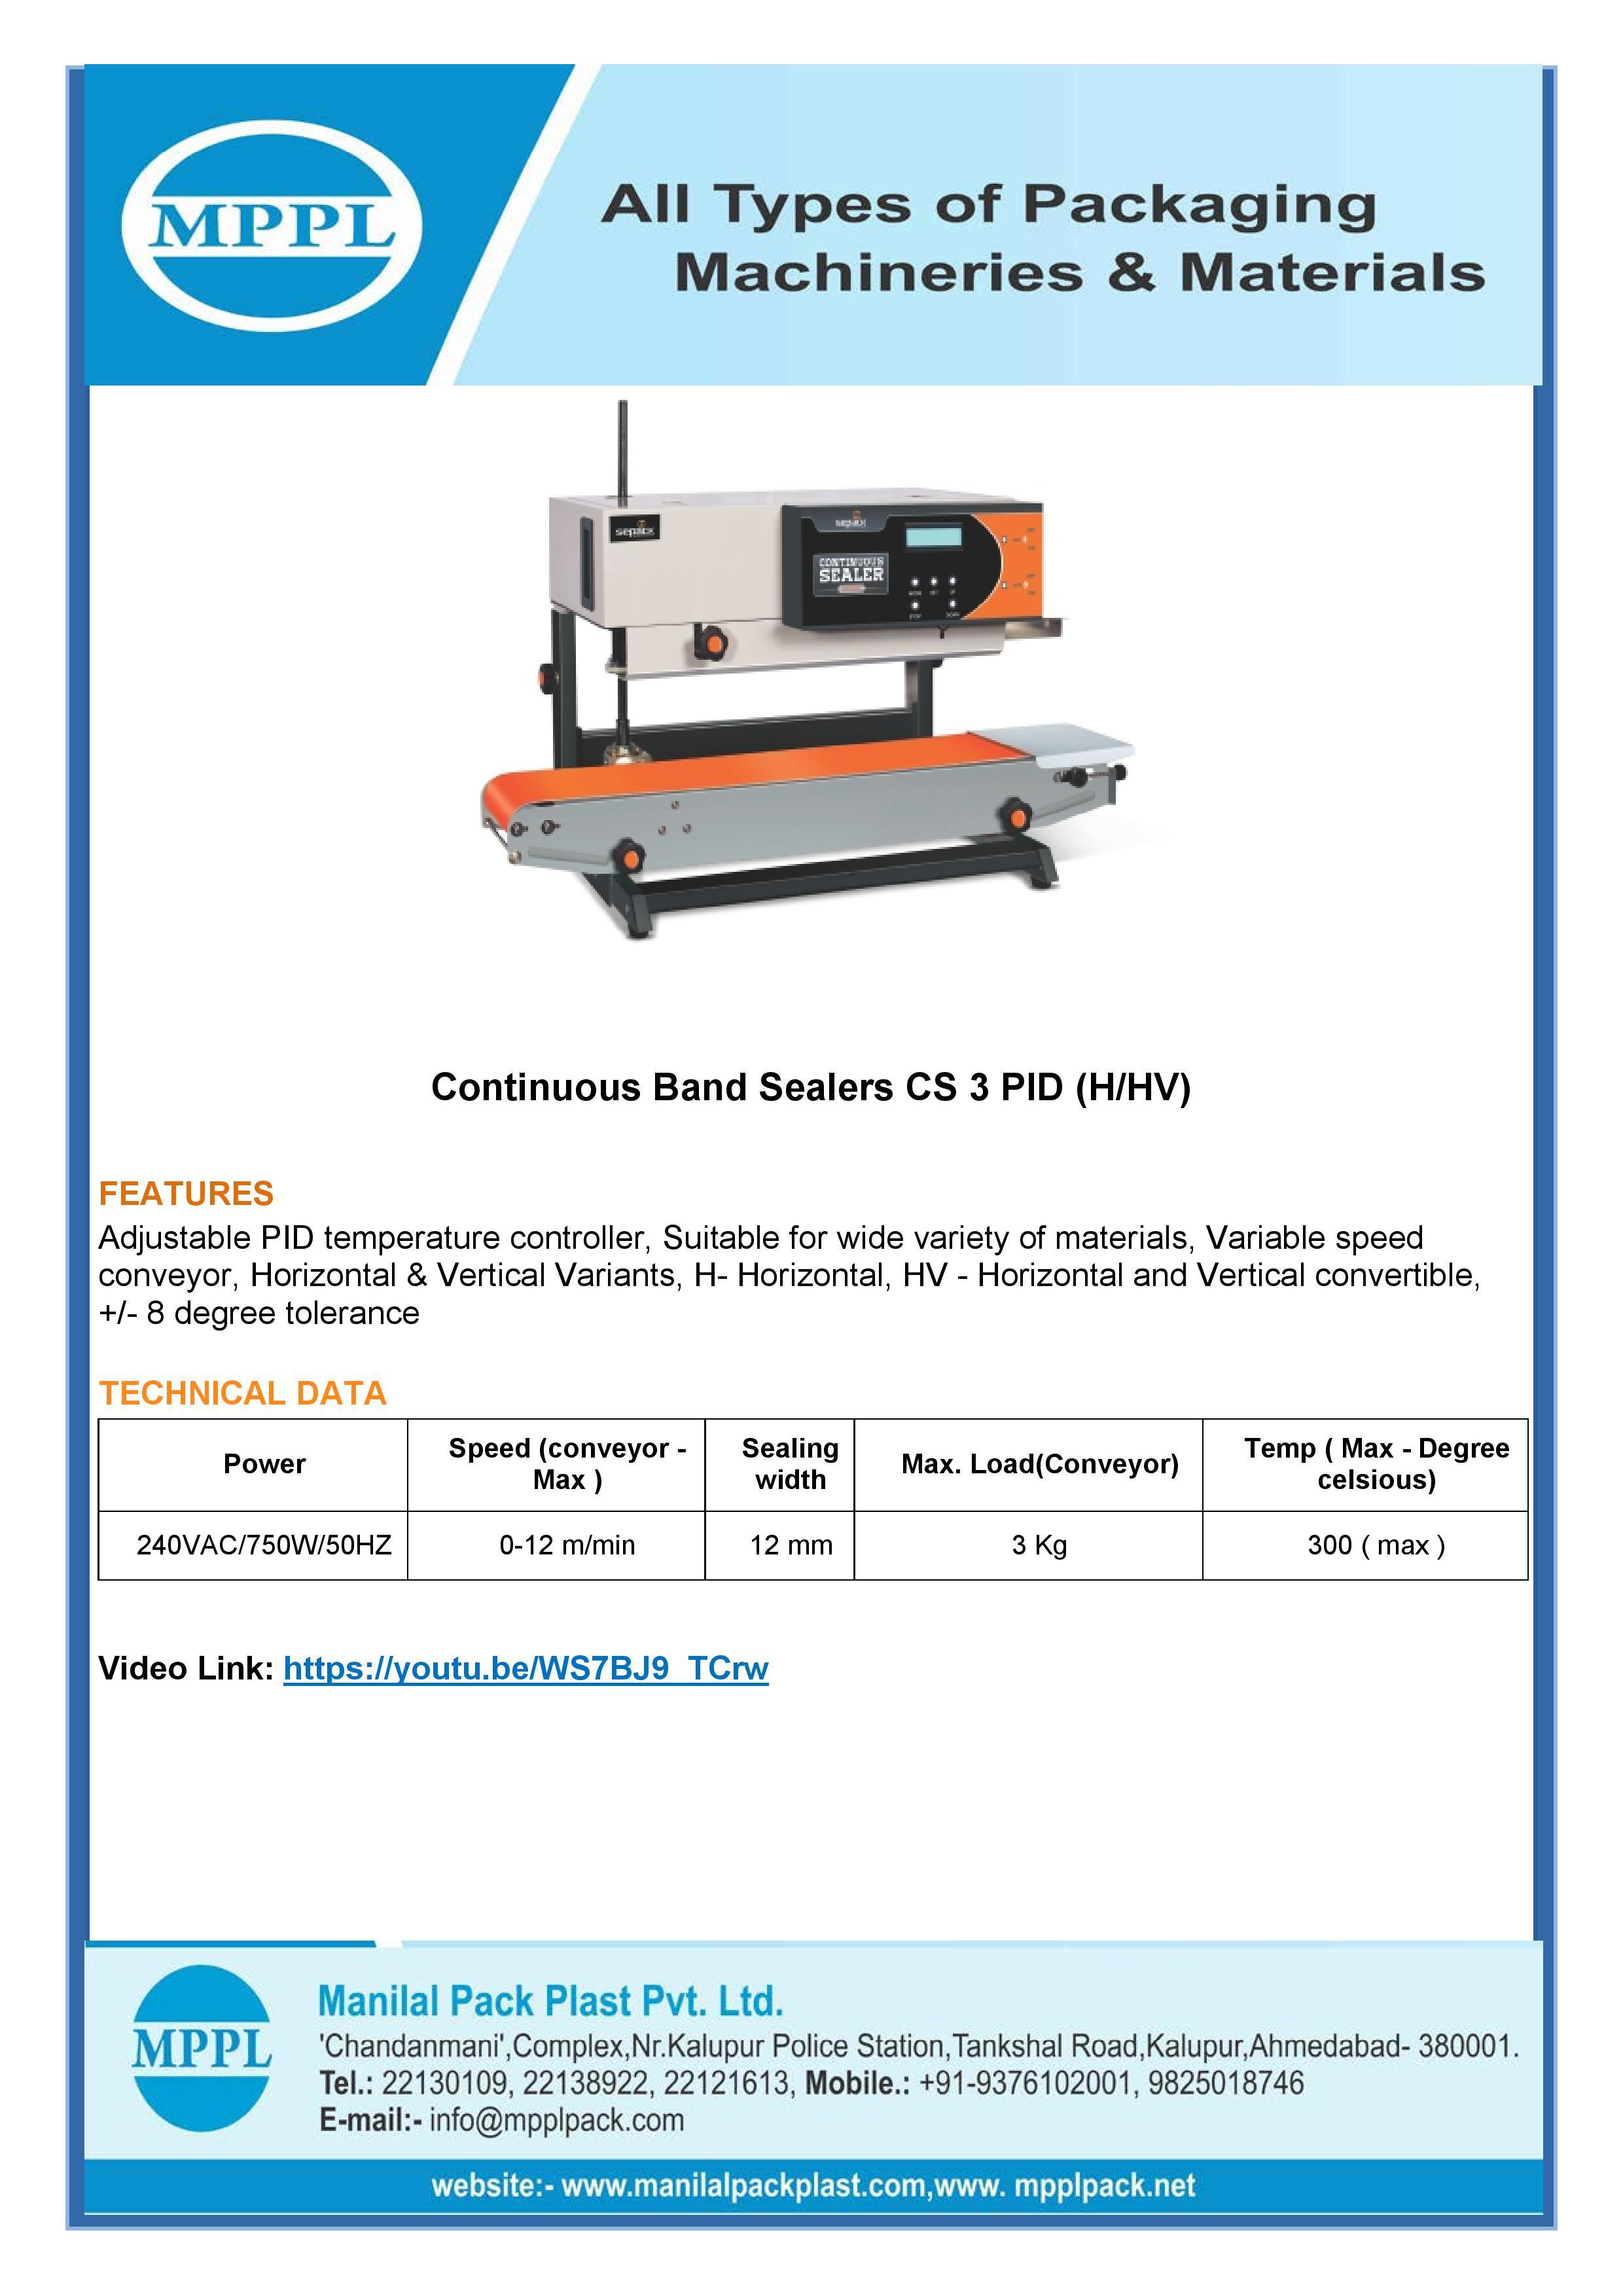 Continuous Band Sealer CS 3 PID H HV